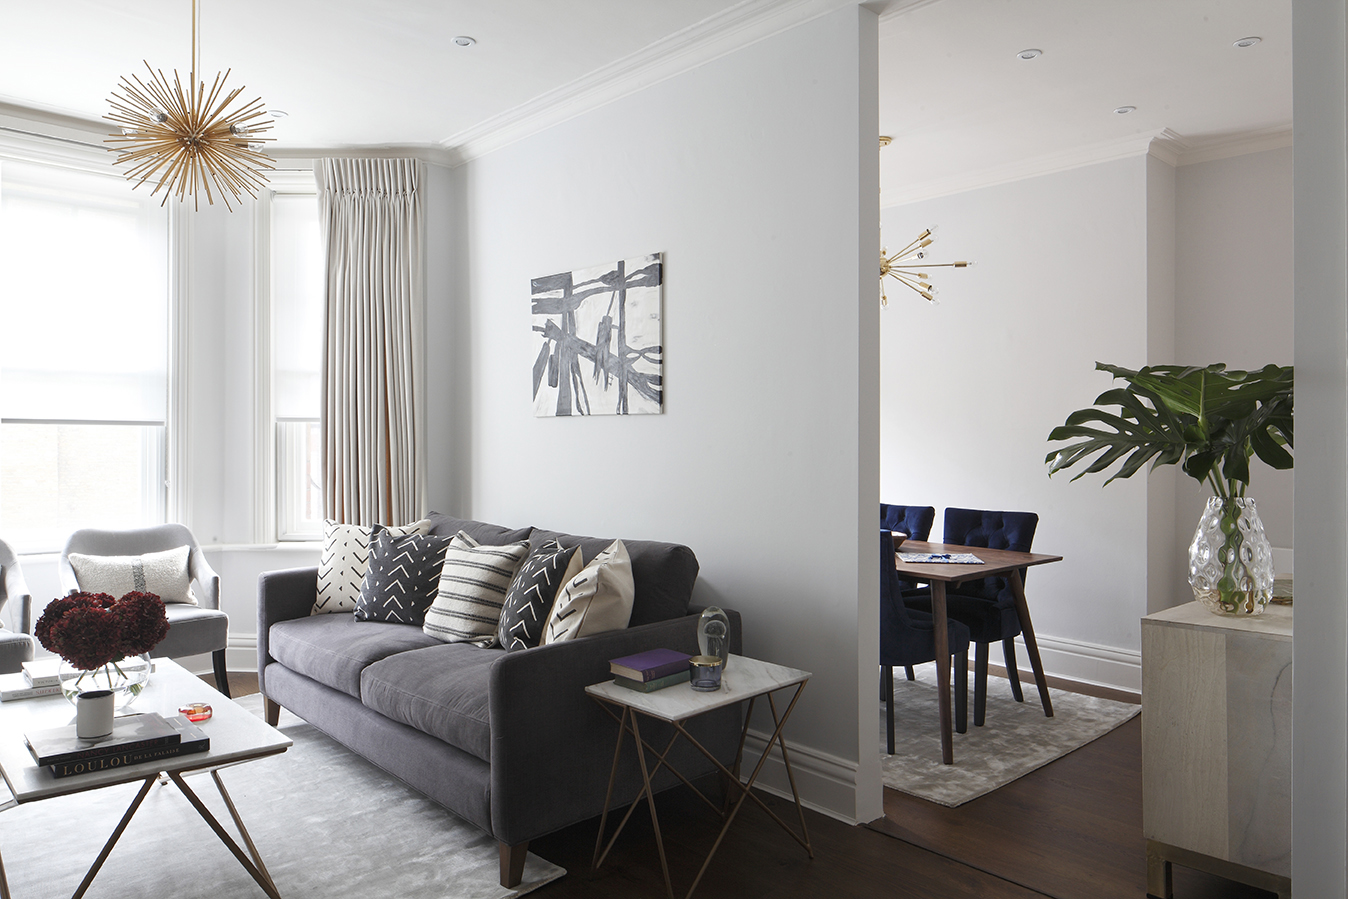 NW1- Living room - Dispaying both living room and dining -LO.jpg